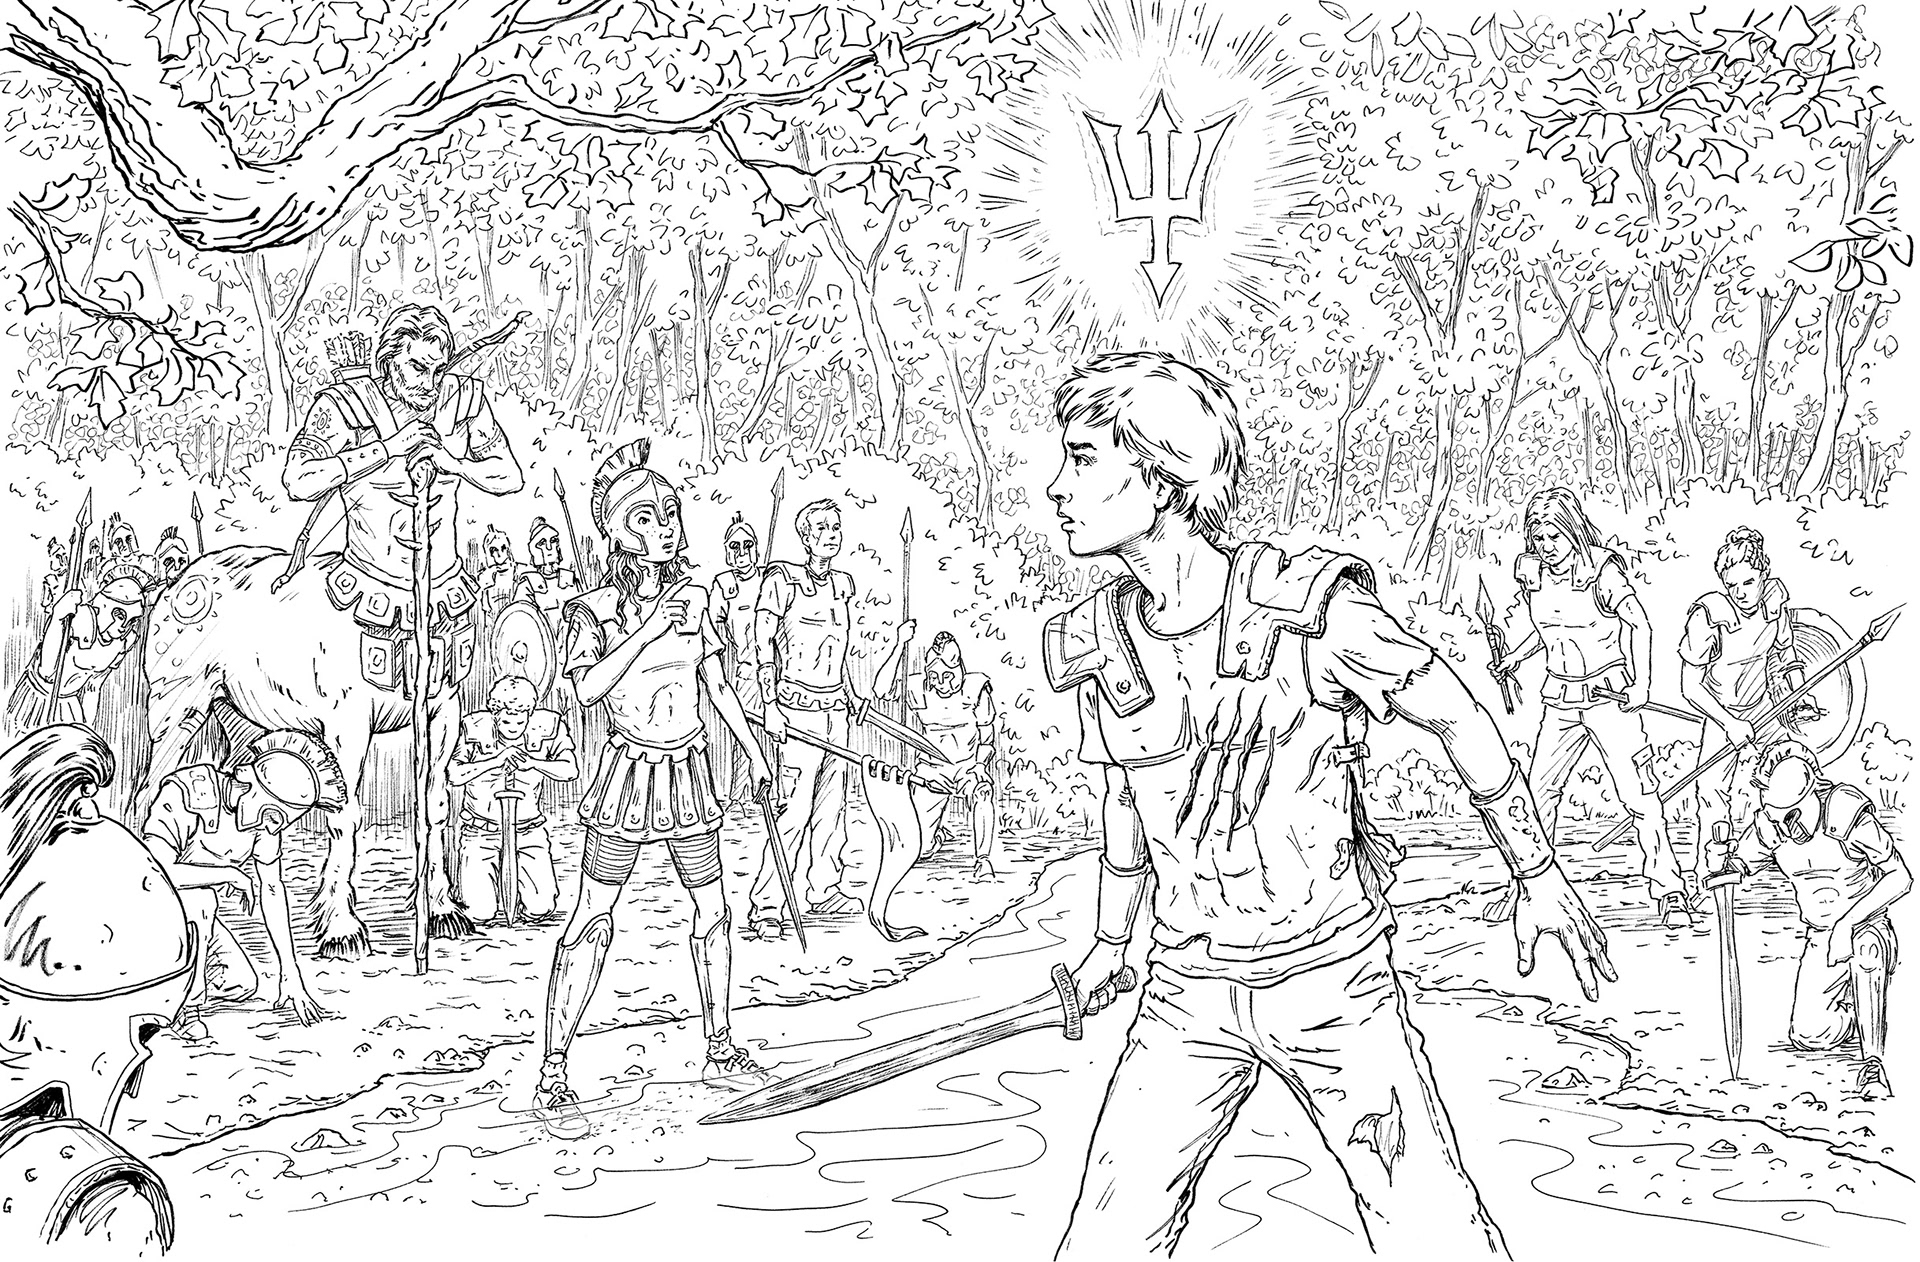 camp half blood coloring pages - photo#5